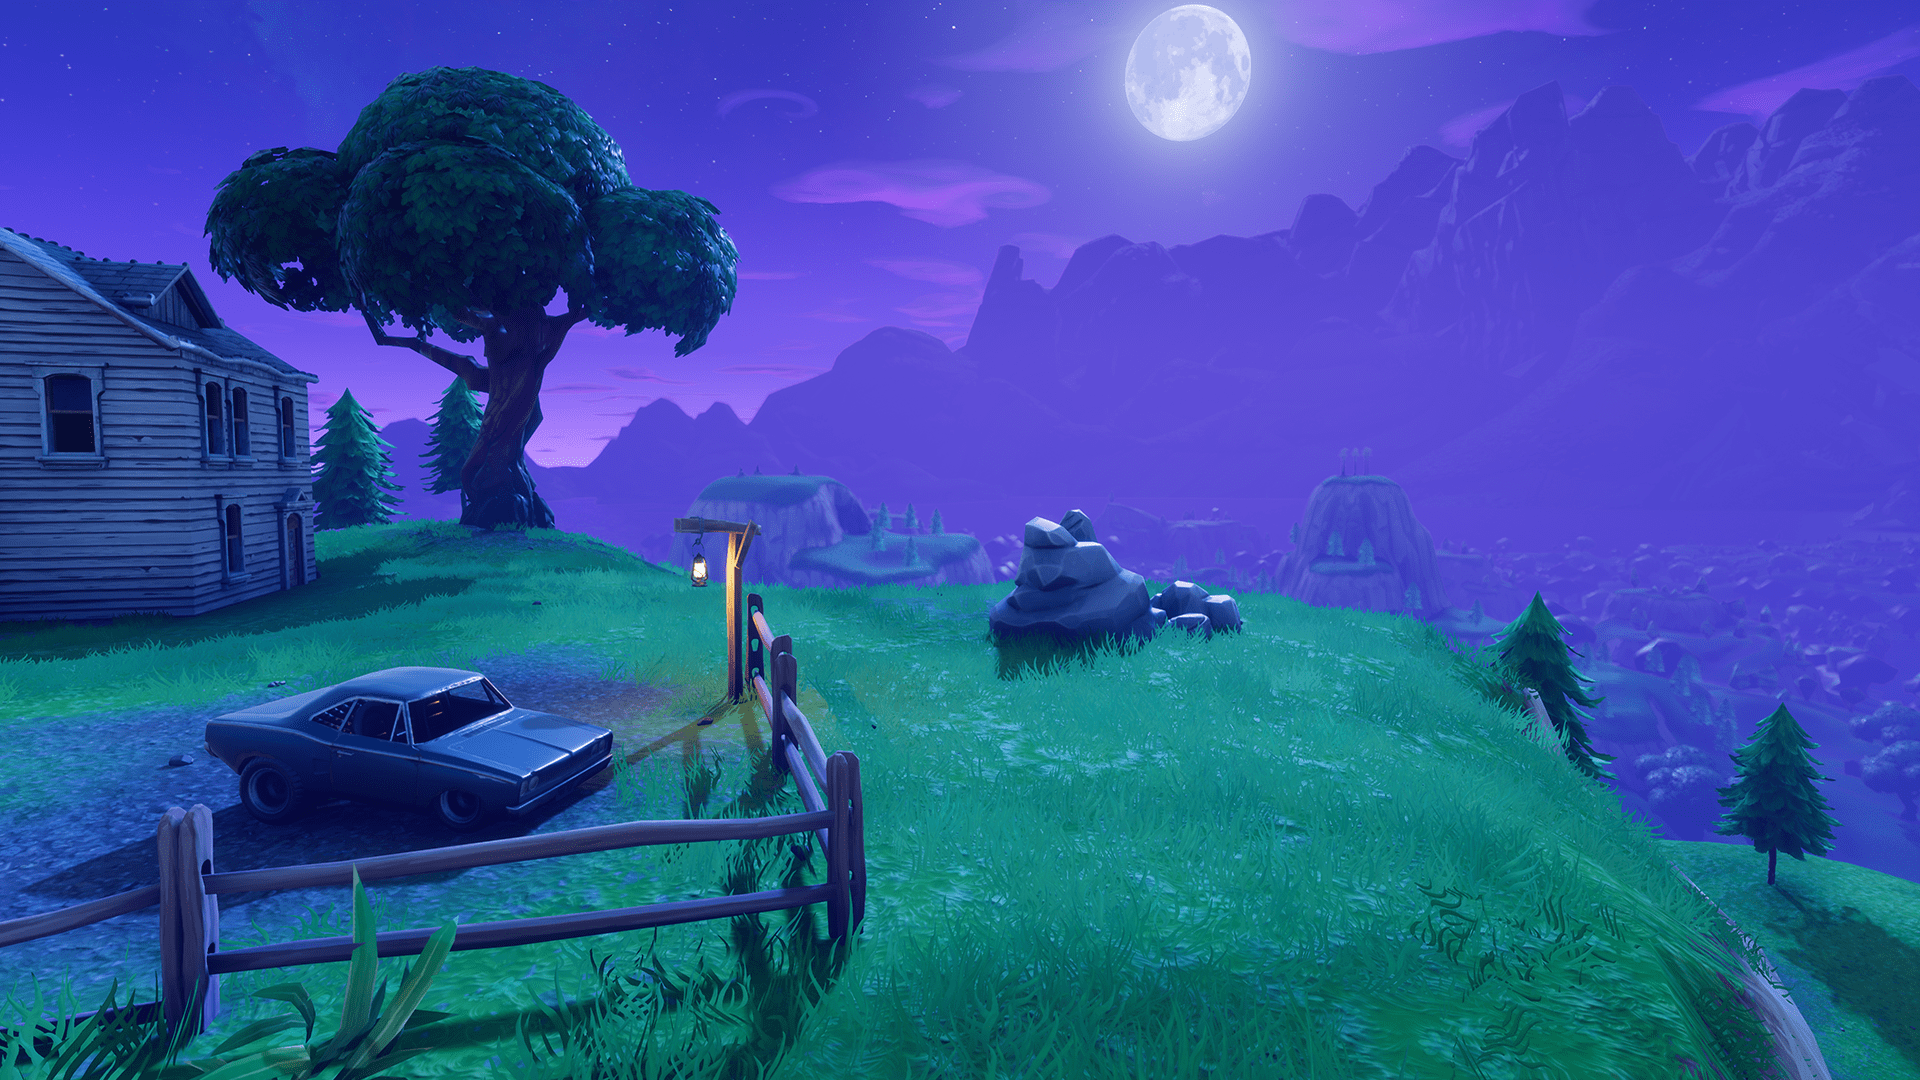 Fortnite HD Wallpapers and Backgrounds Image stmed